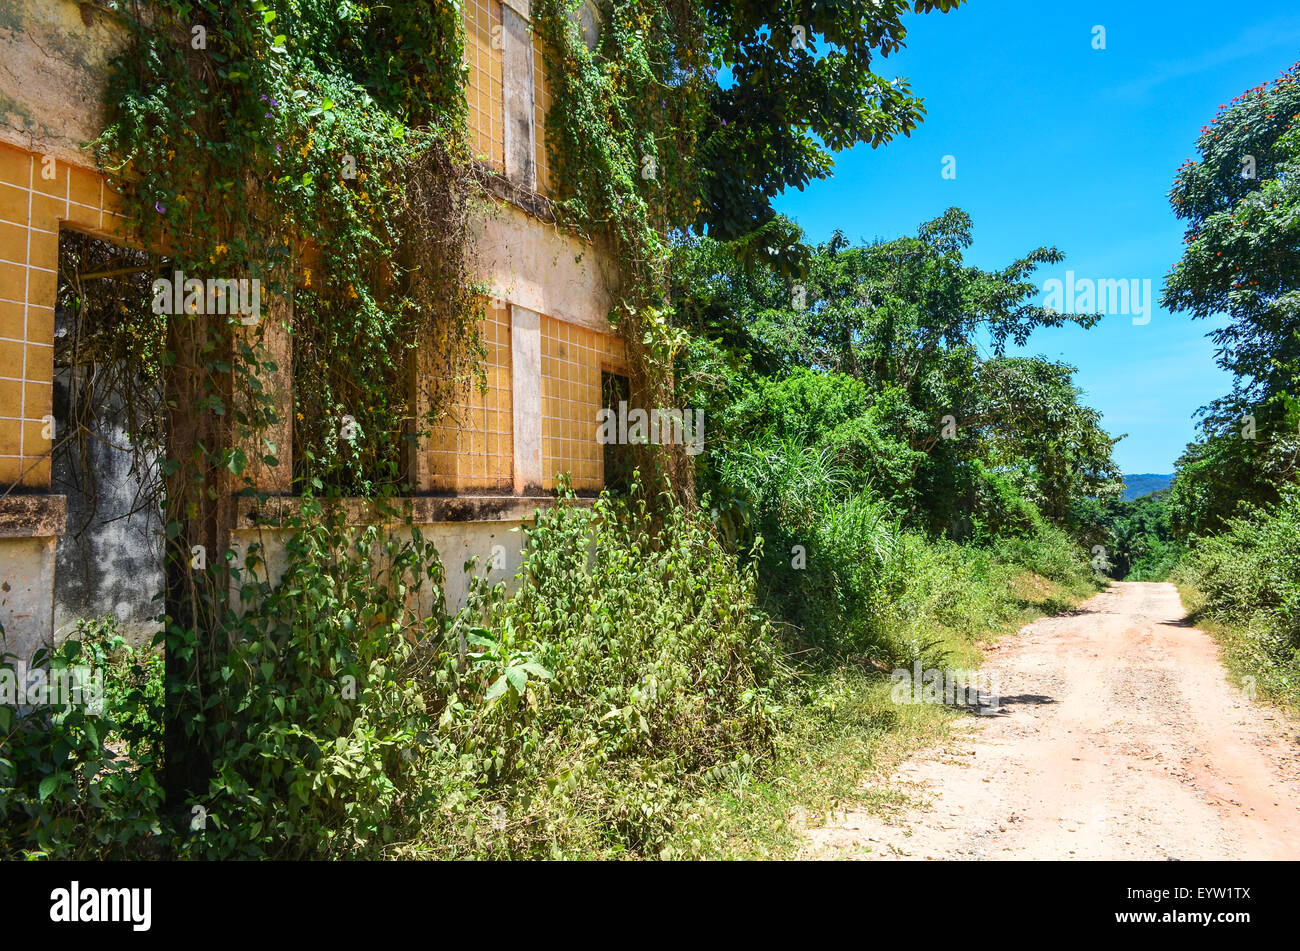 Ruins of a large house, probably a colonial building,  in rural Angola - Stock Image